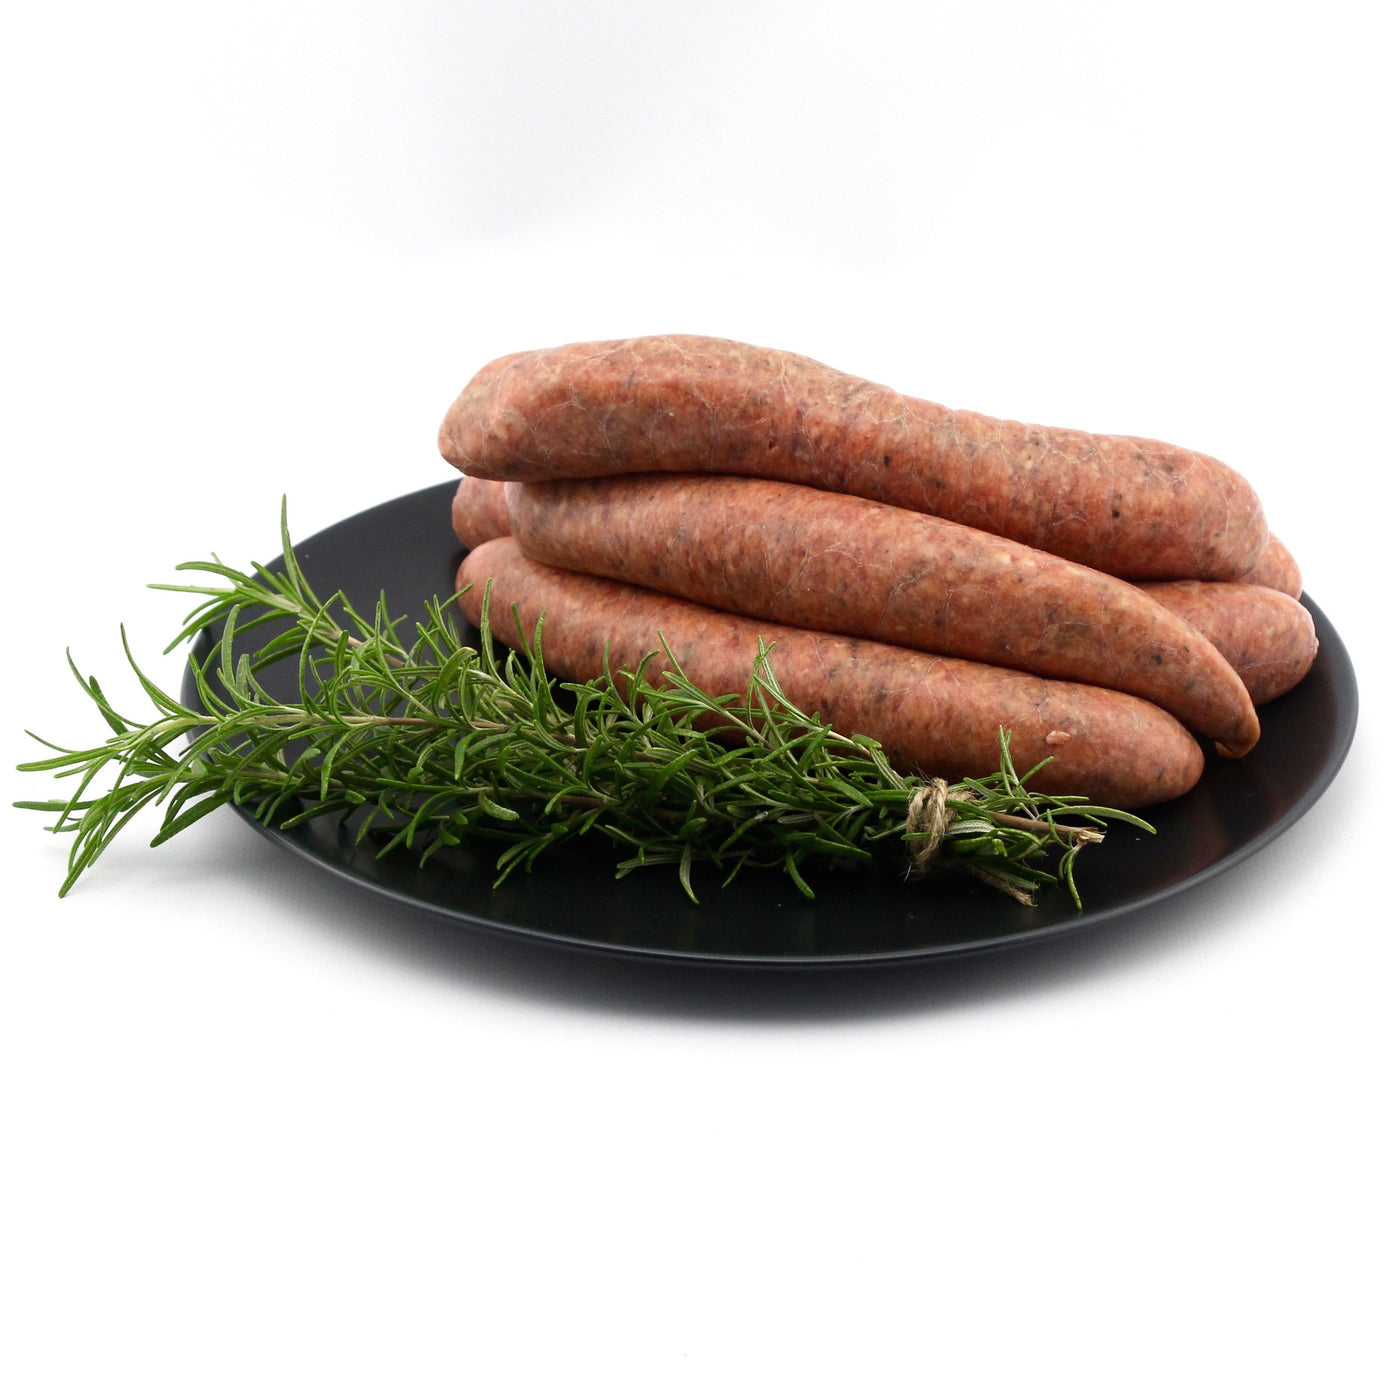 Biodynamic Lamb and Rosemary Sausages